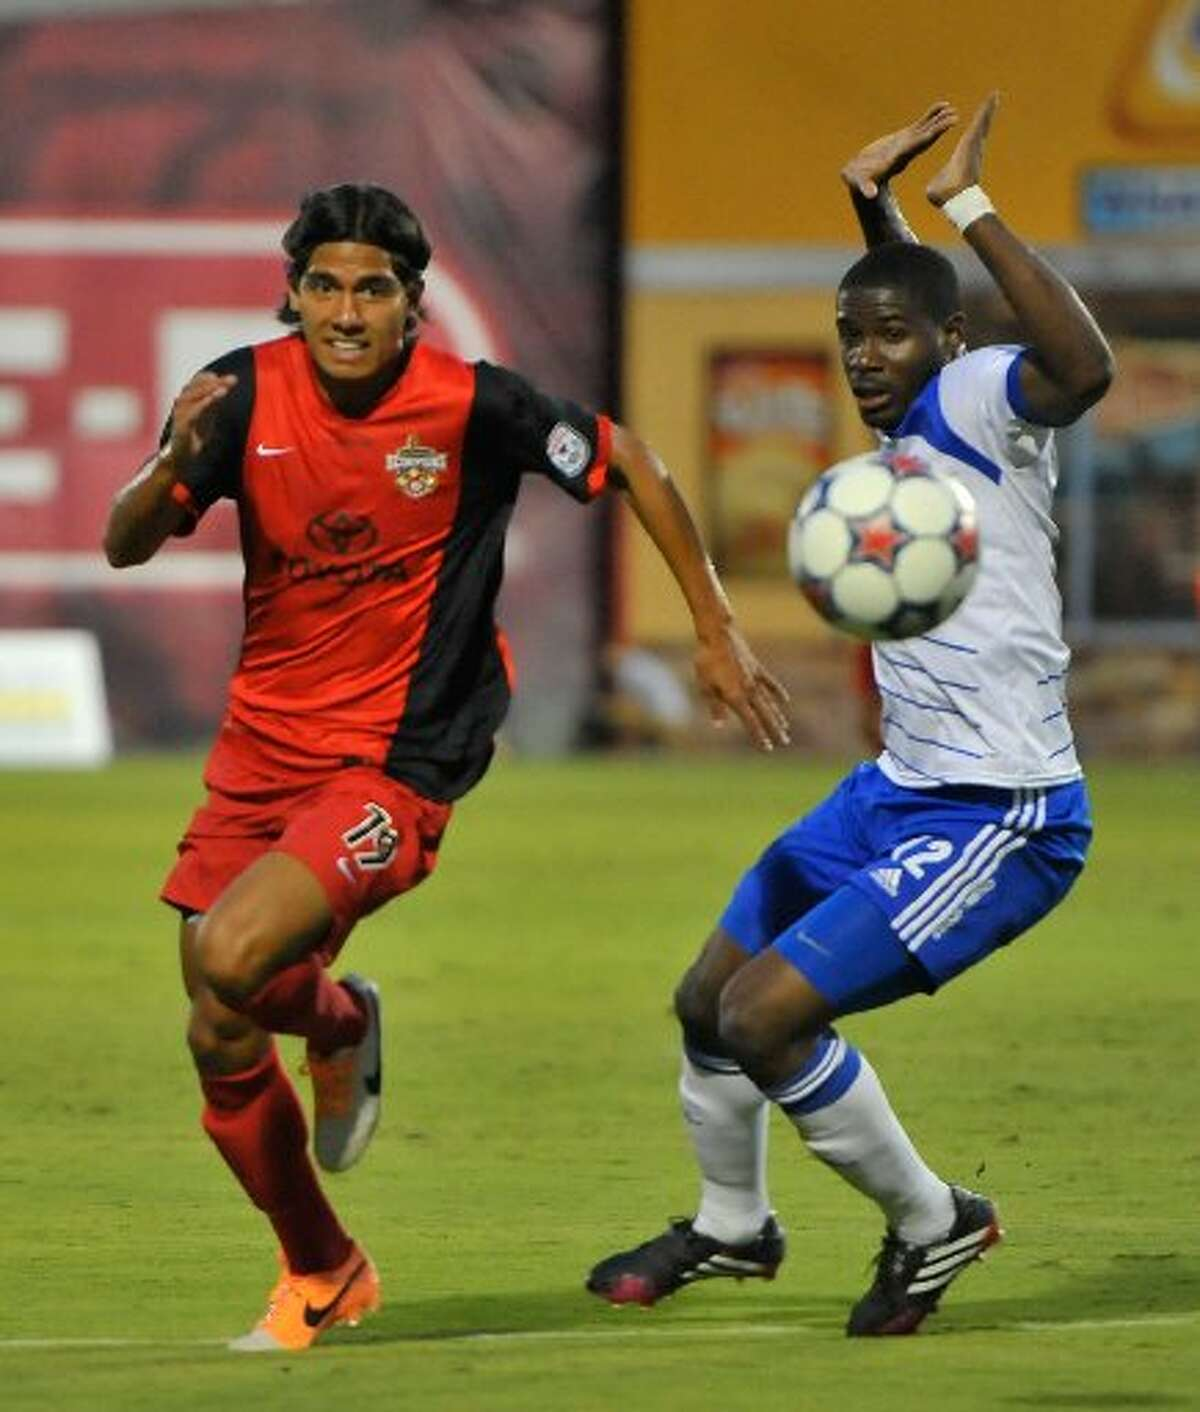 Scorpions Josue Soto battles Edmonton's Kareem Moses for the ball during the first half of their NASL match at Toyota Field on Sept. 6.